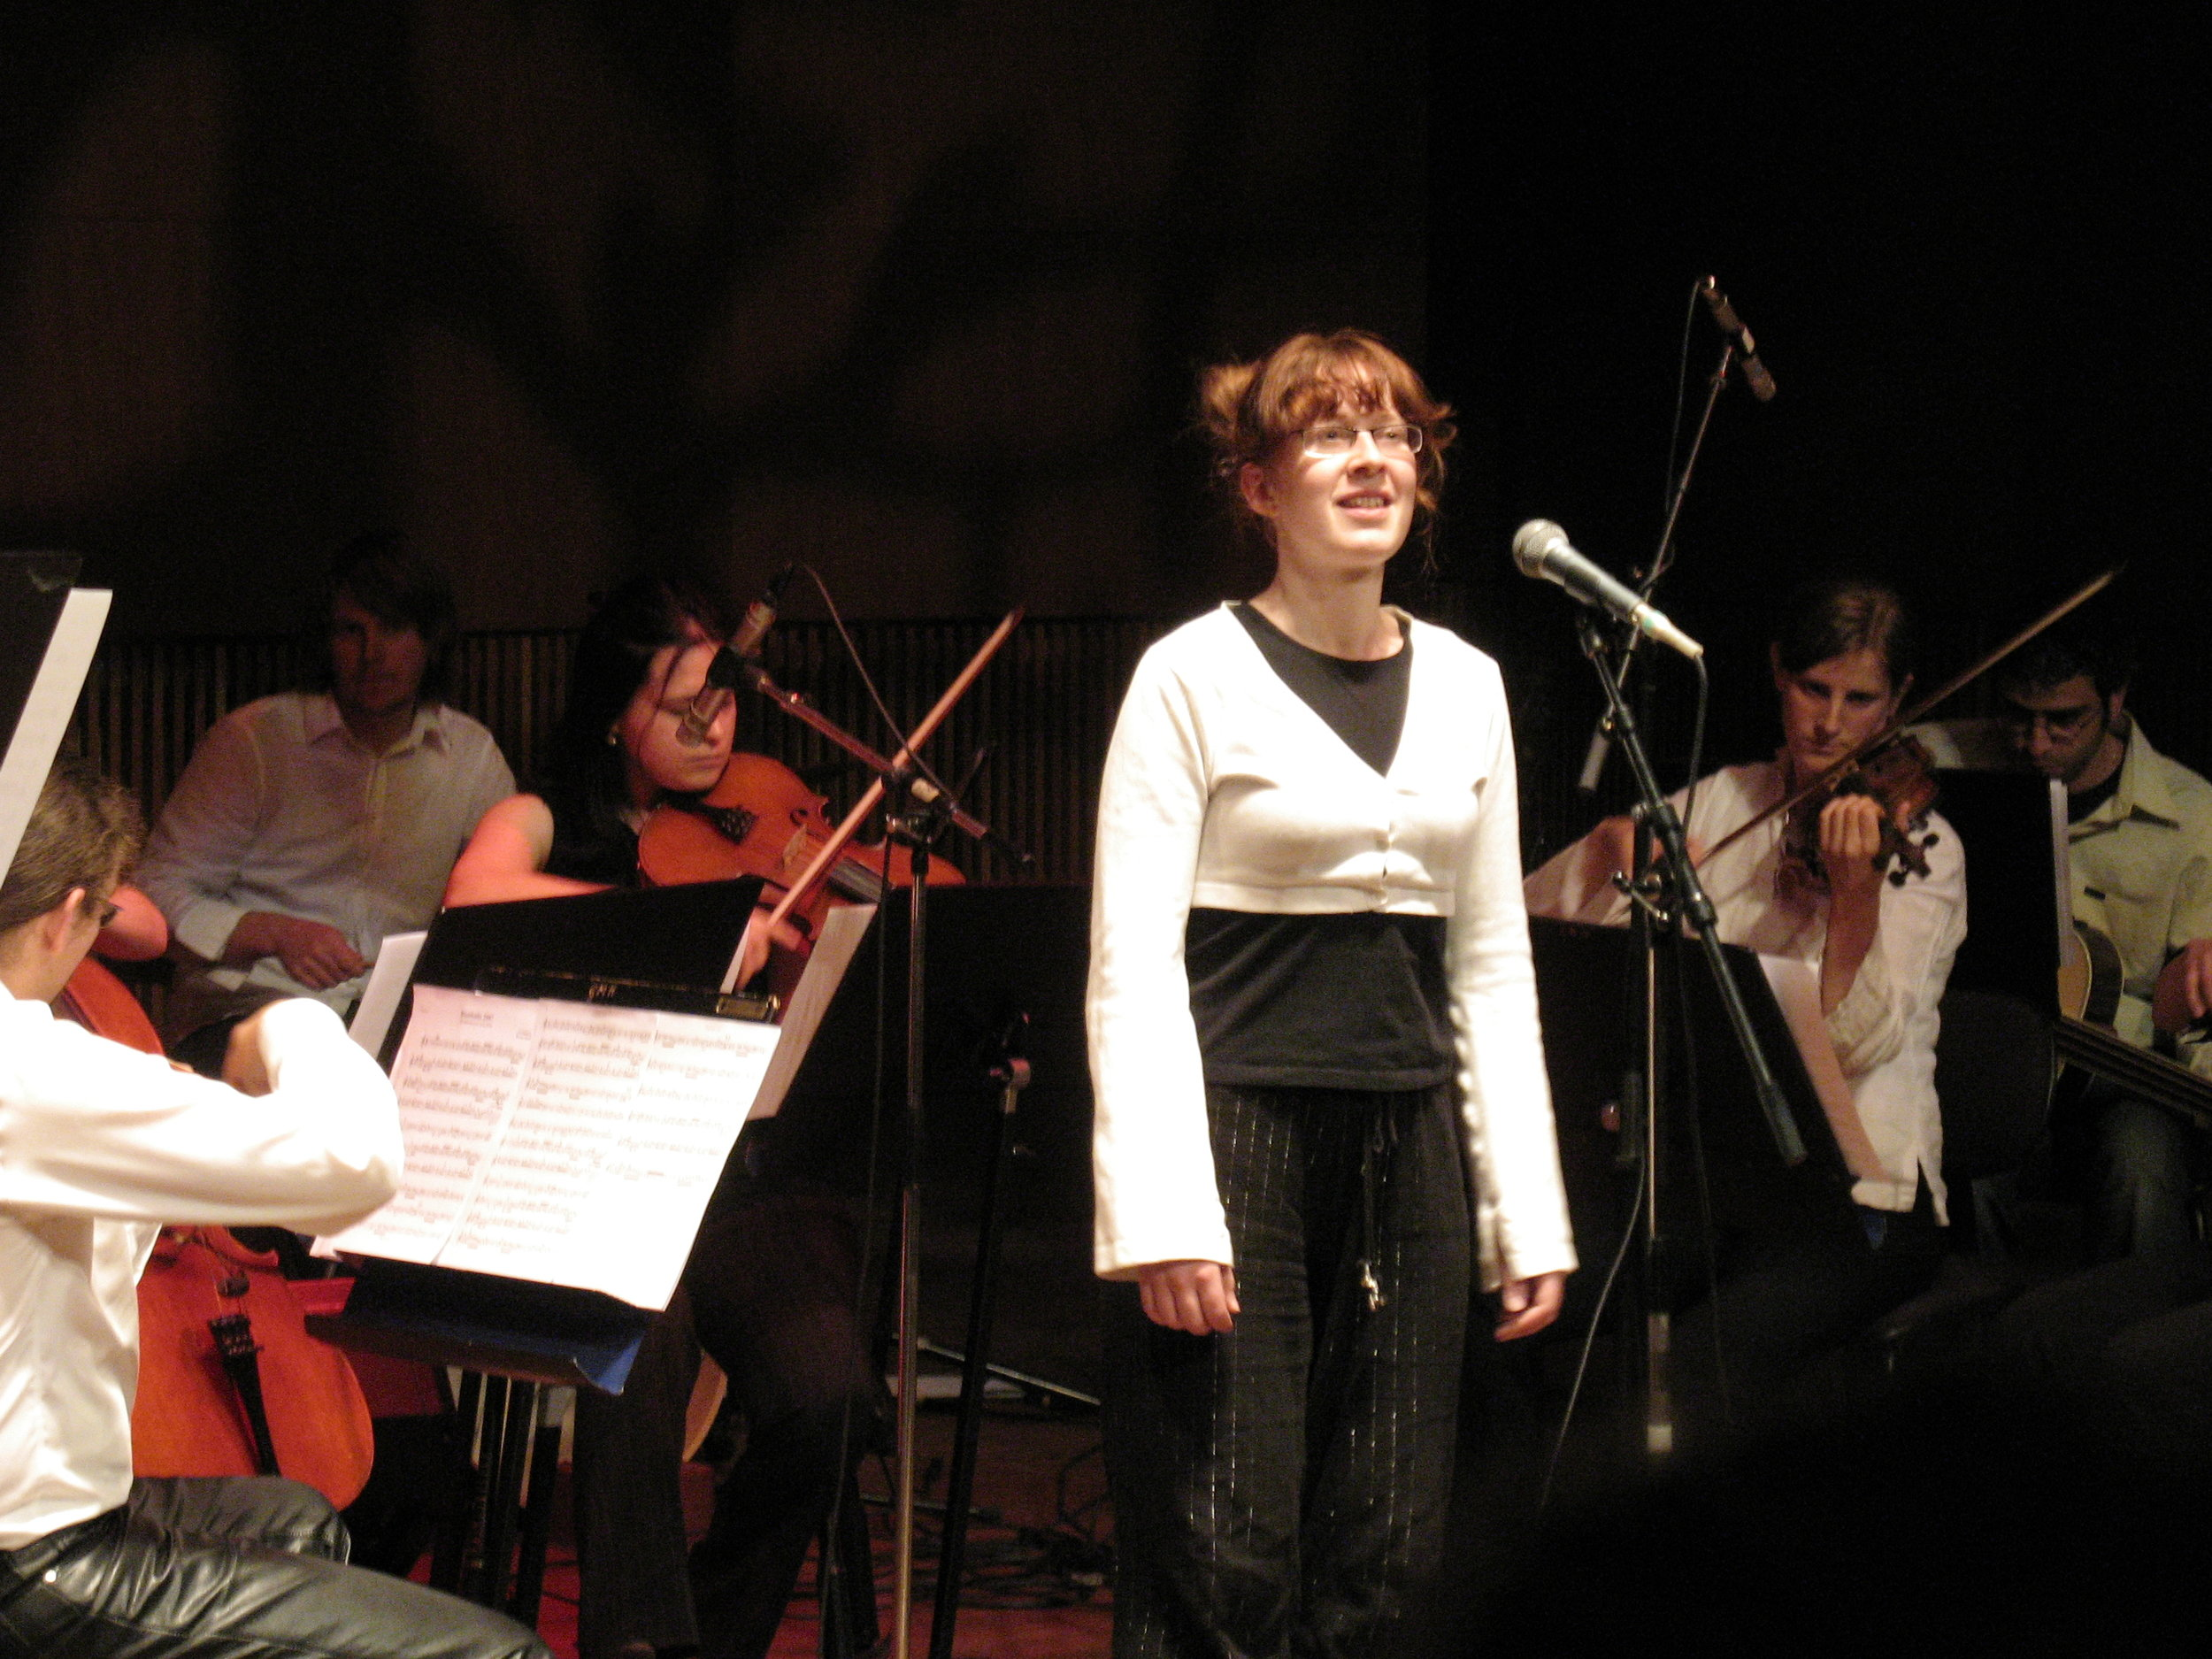 Pictures from the examination concert 037.jpg